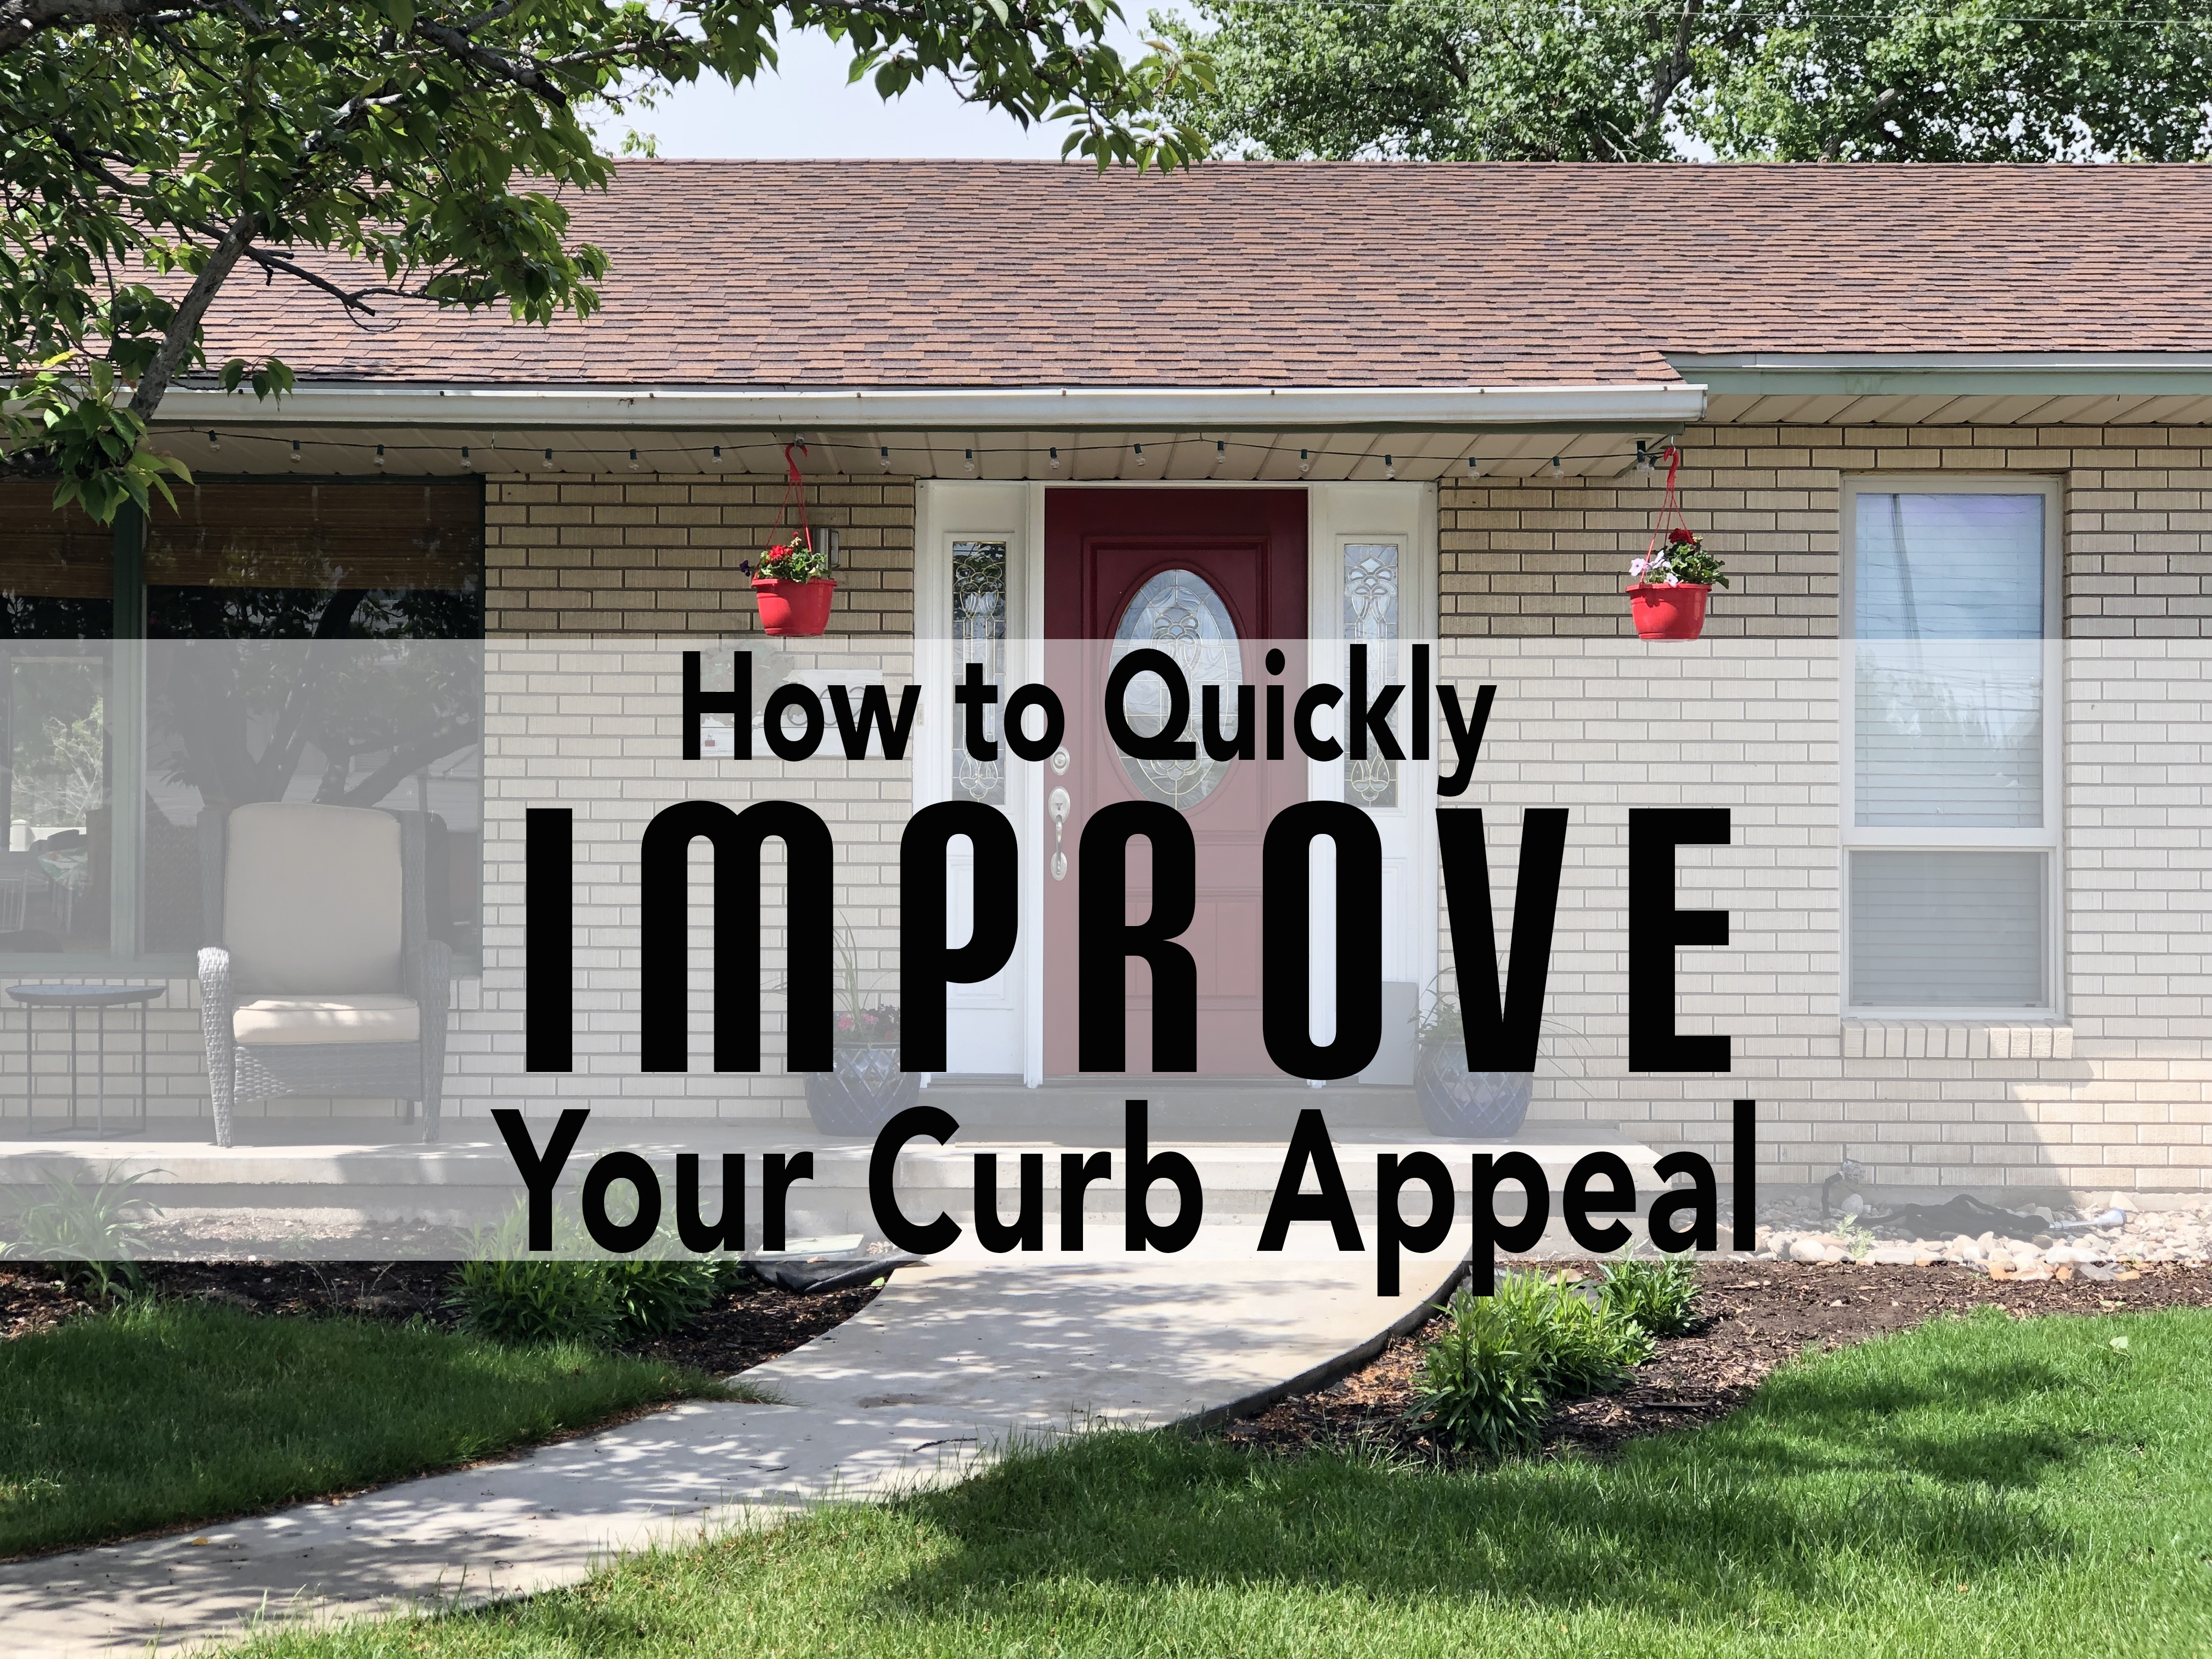 How to Quickly Improve Your Curb Appeal